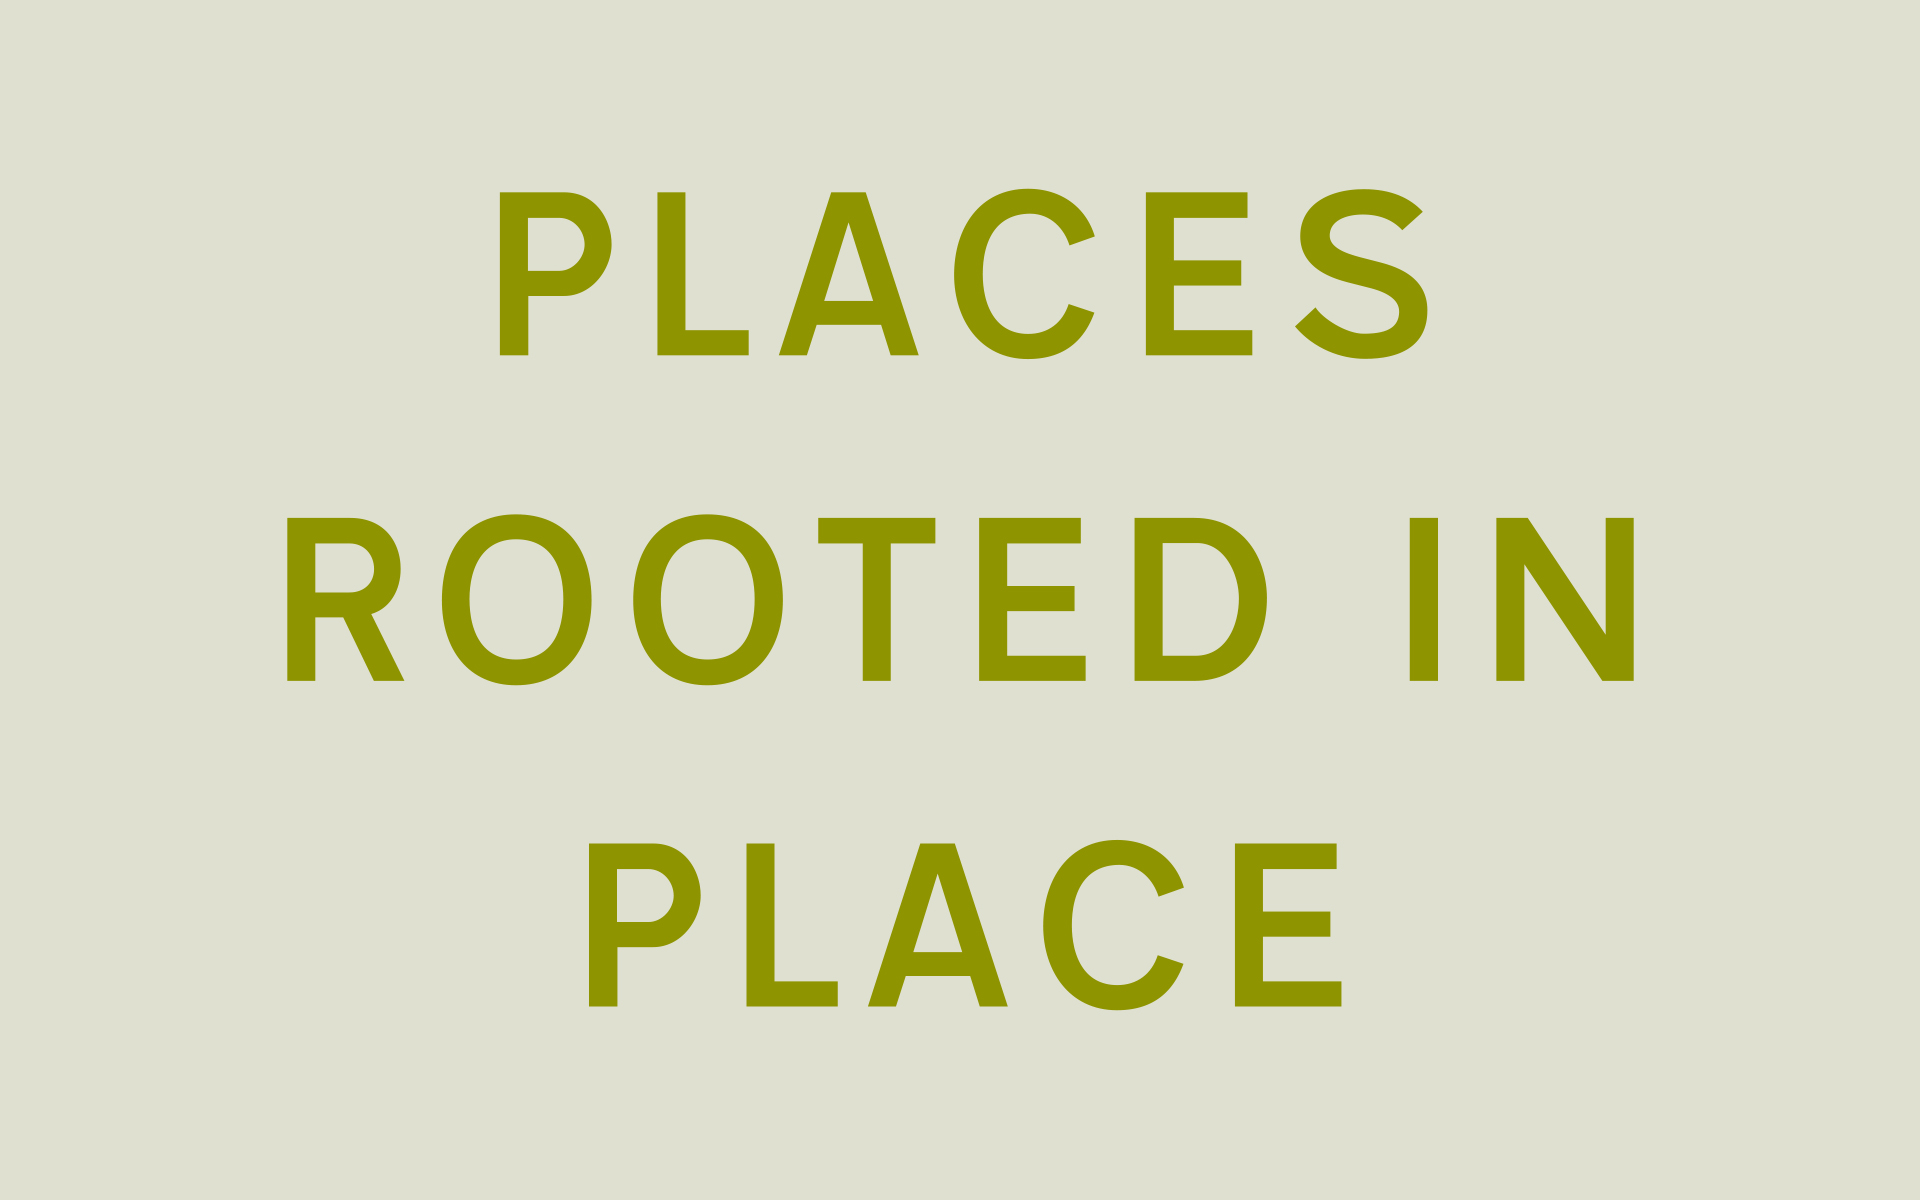 The core idea: Places rooted in place